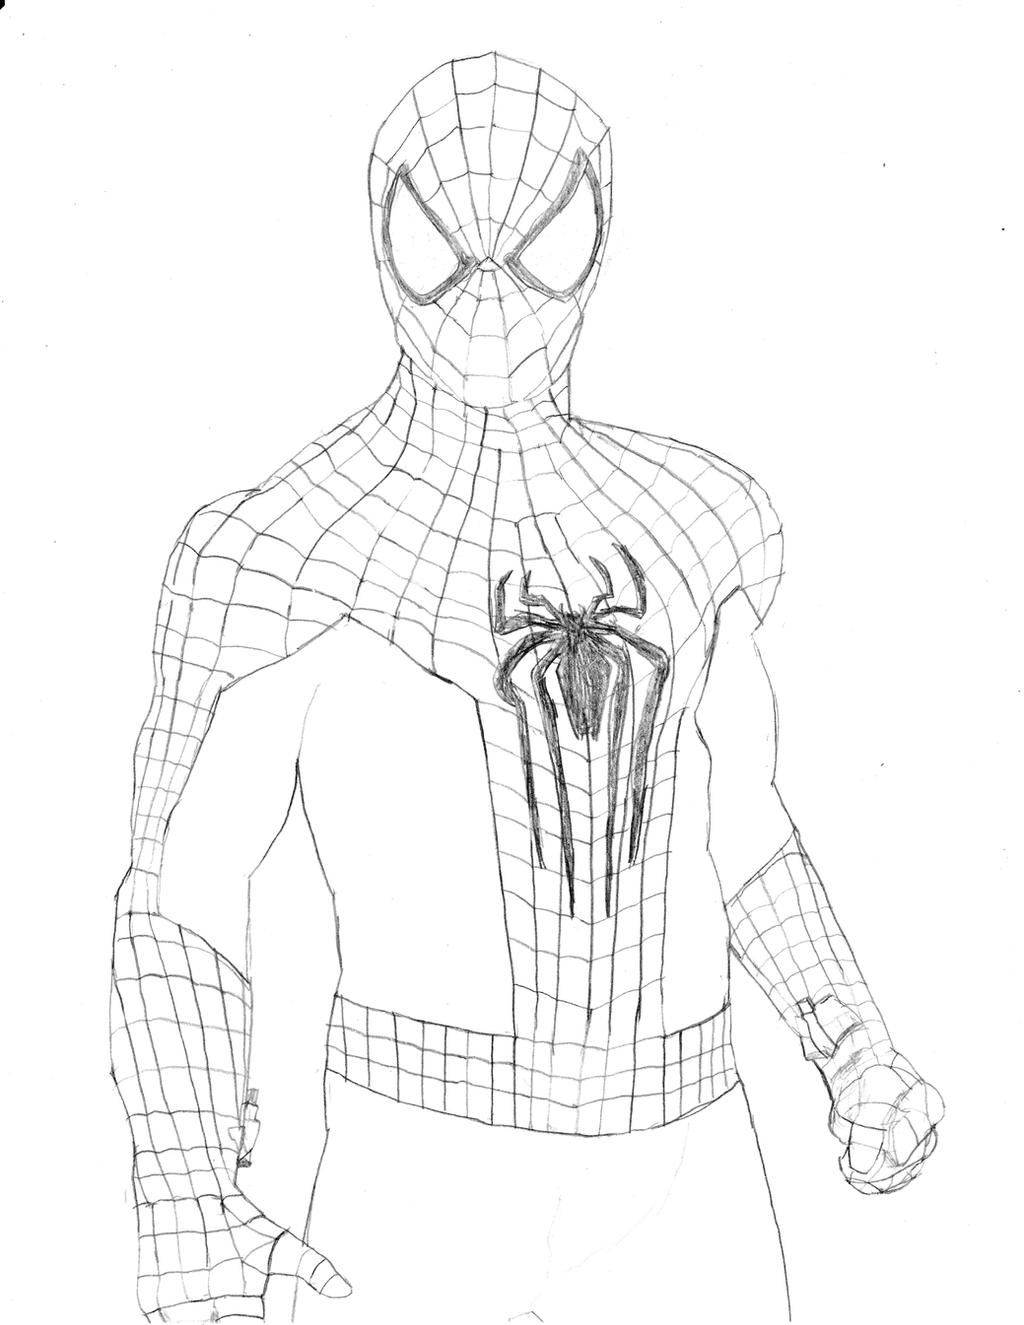 The (un)Amazing Spider-Man 2 by homer311 on DeviantArt